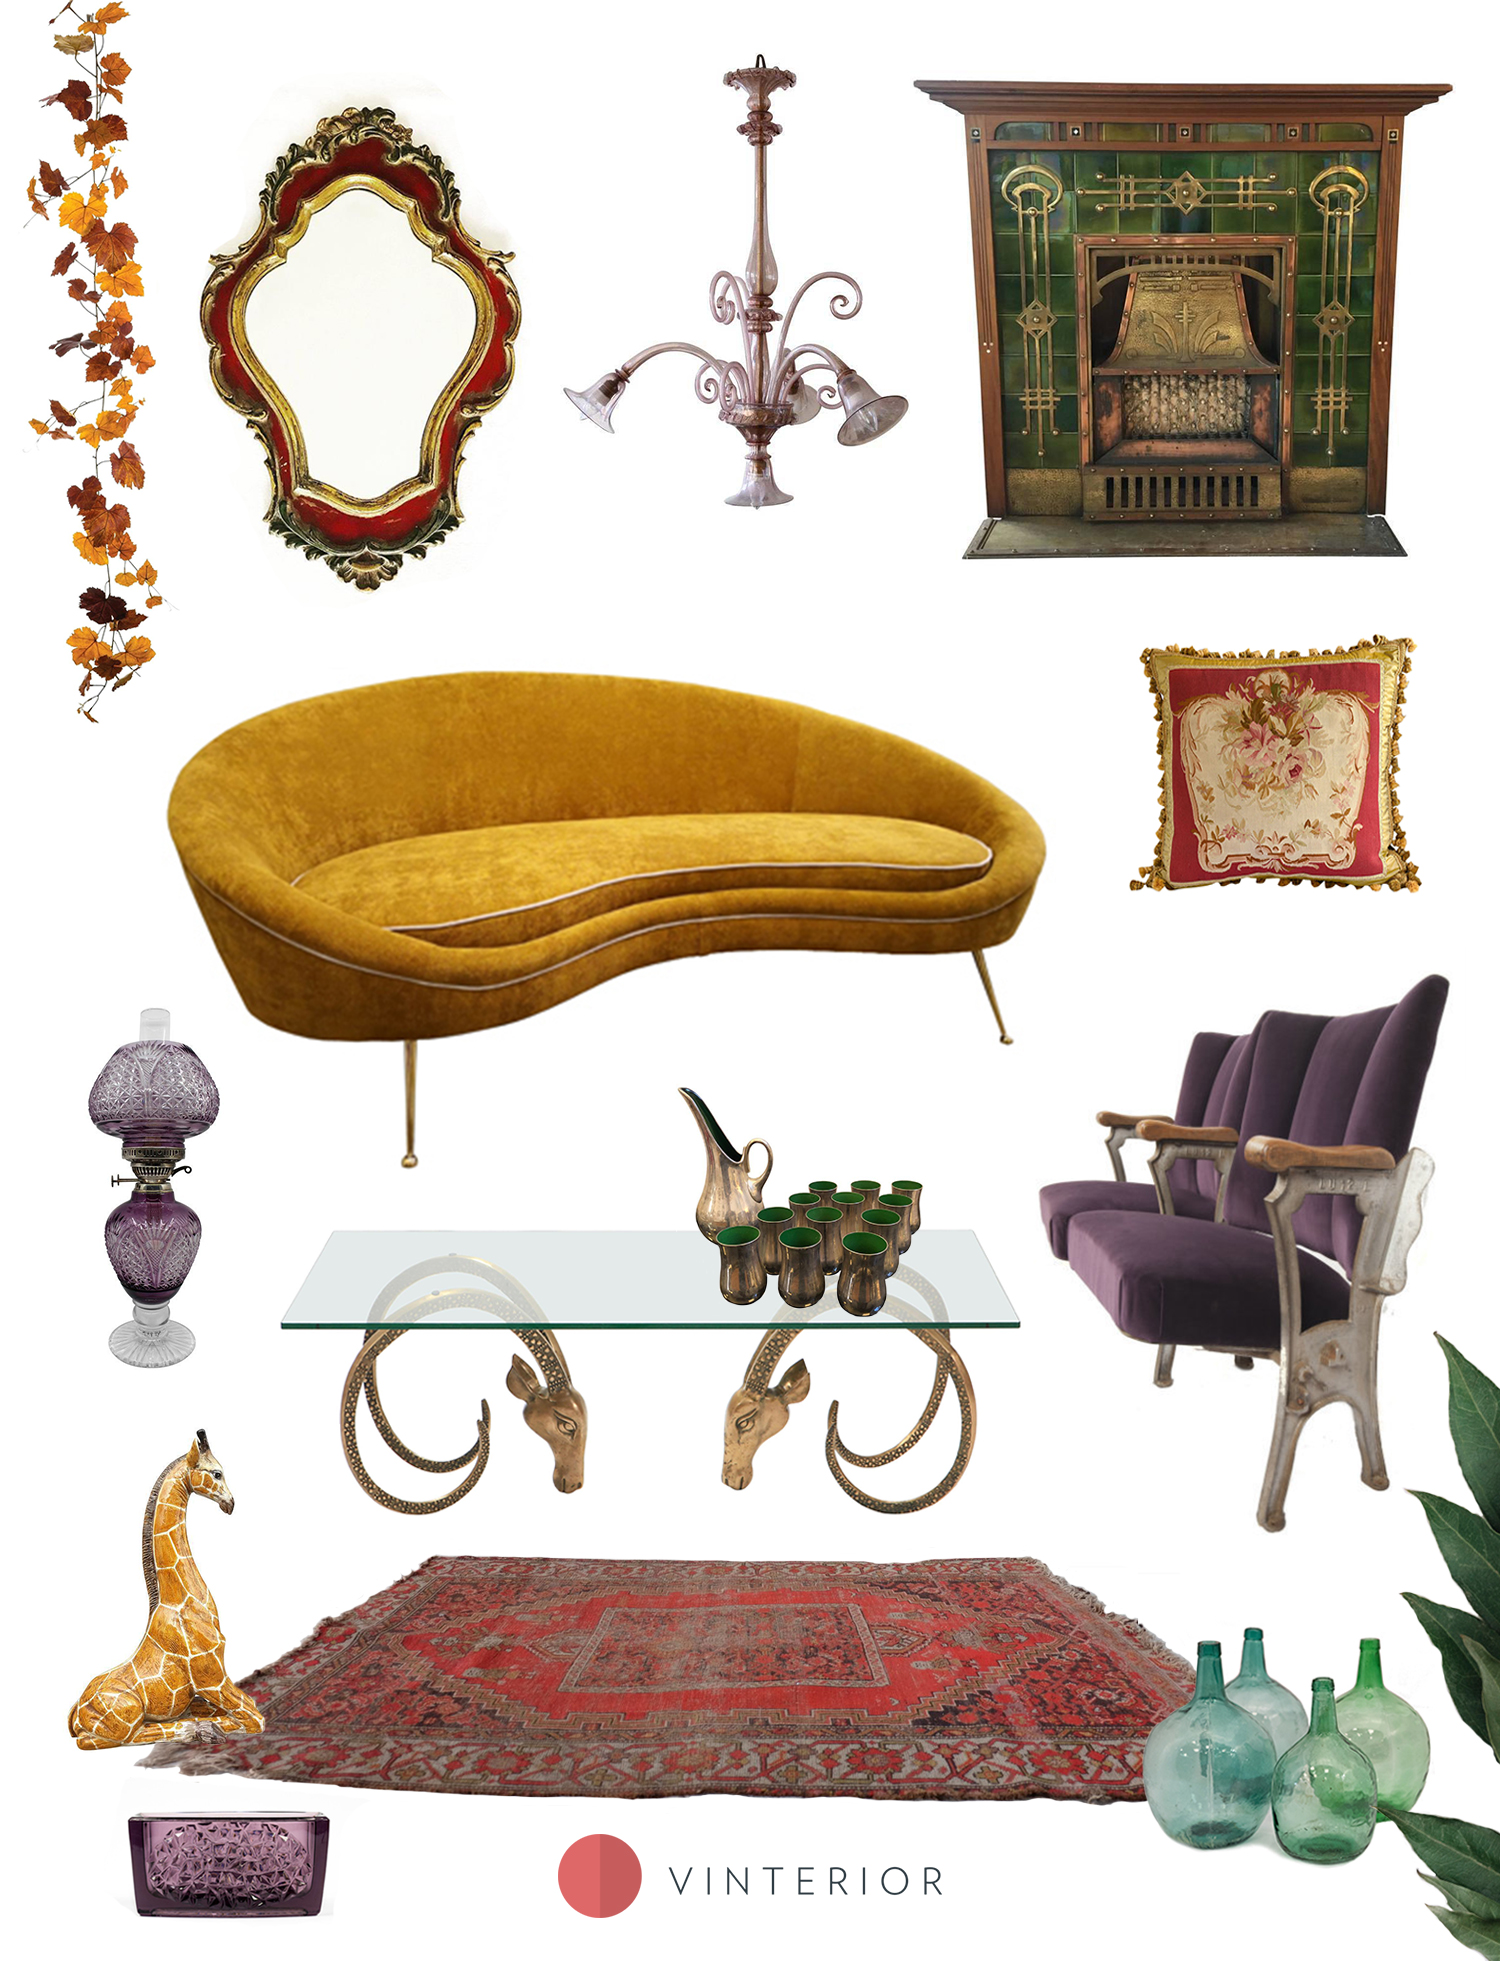 Get the Look: Jewel-toned furniture and decor